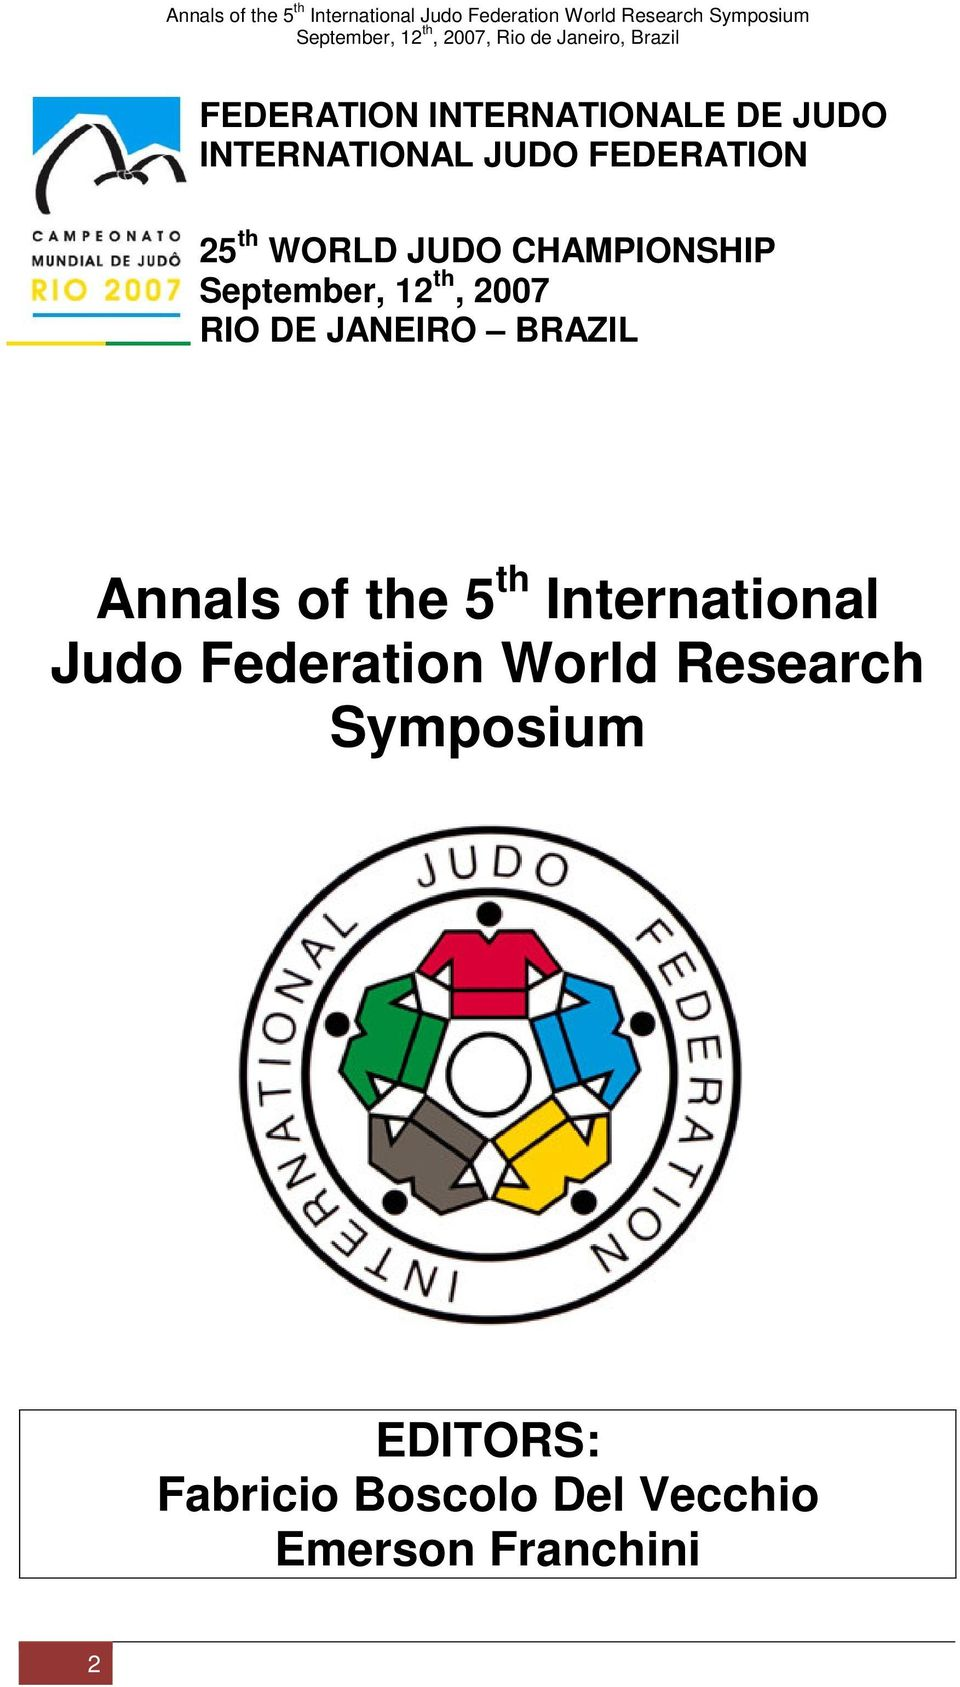 BRAZIL Annals of the 5 th International Judo Federation World